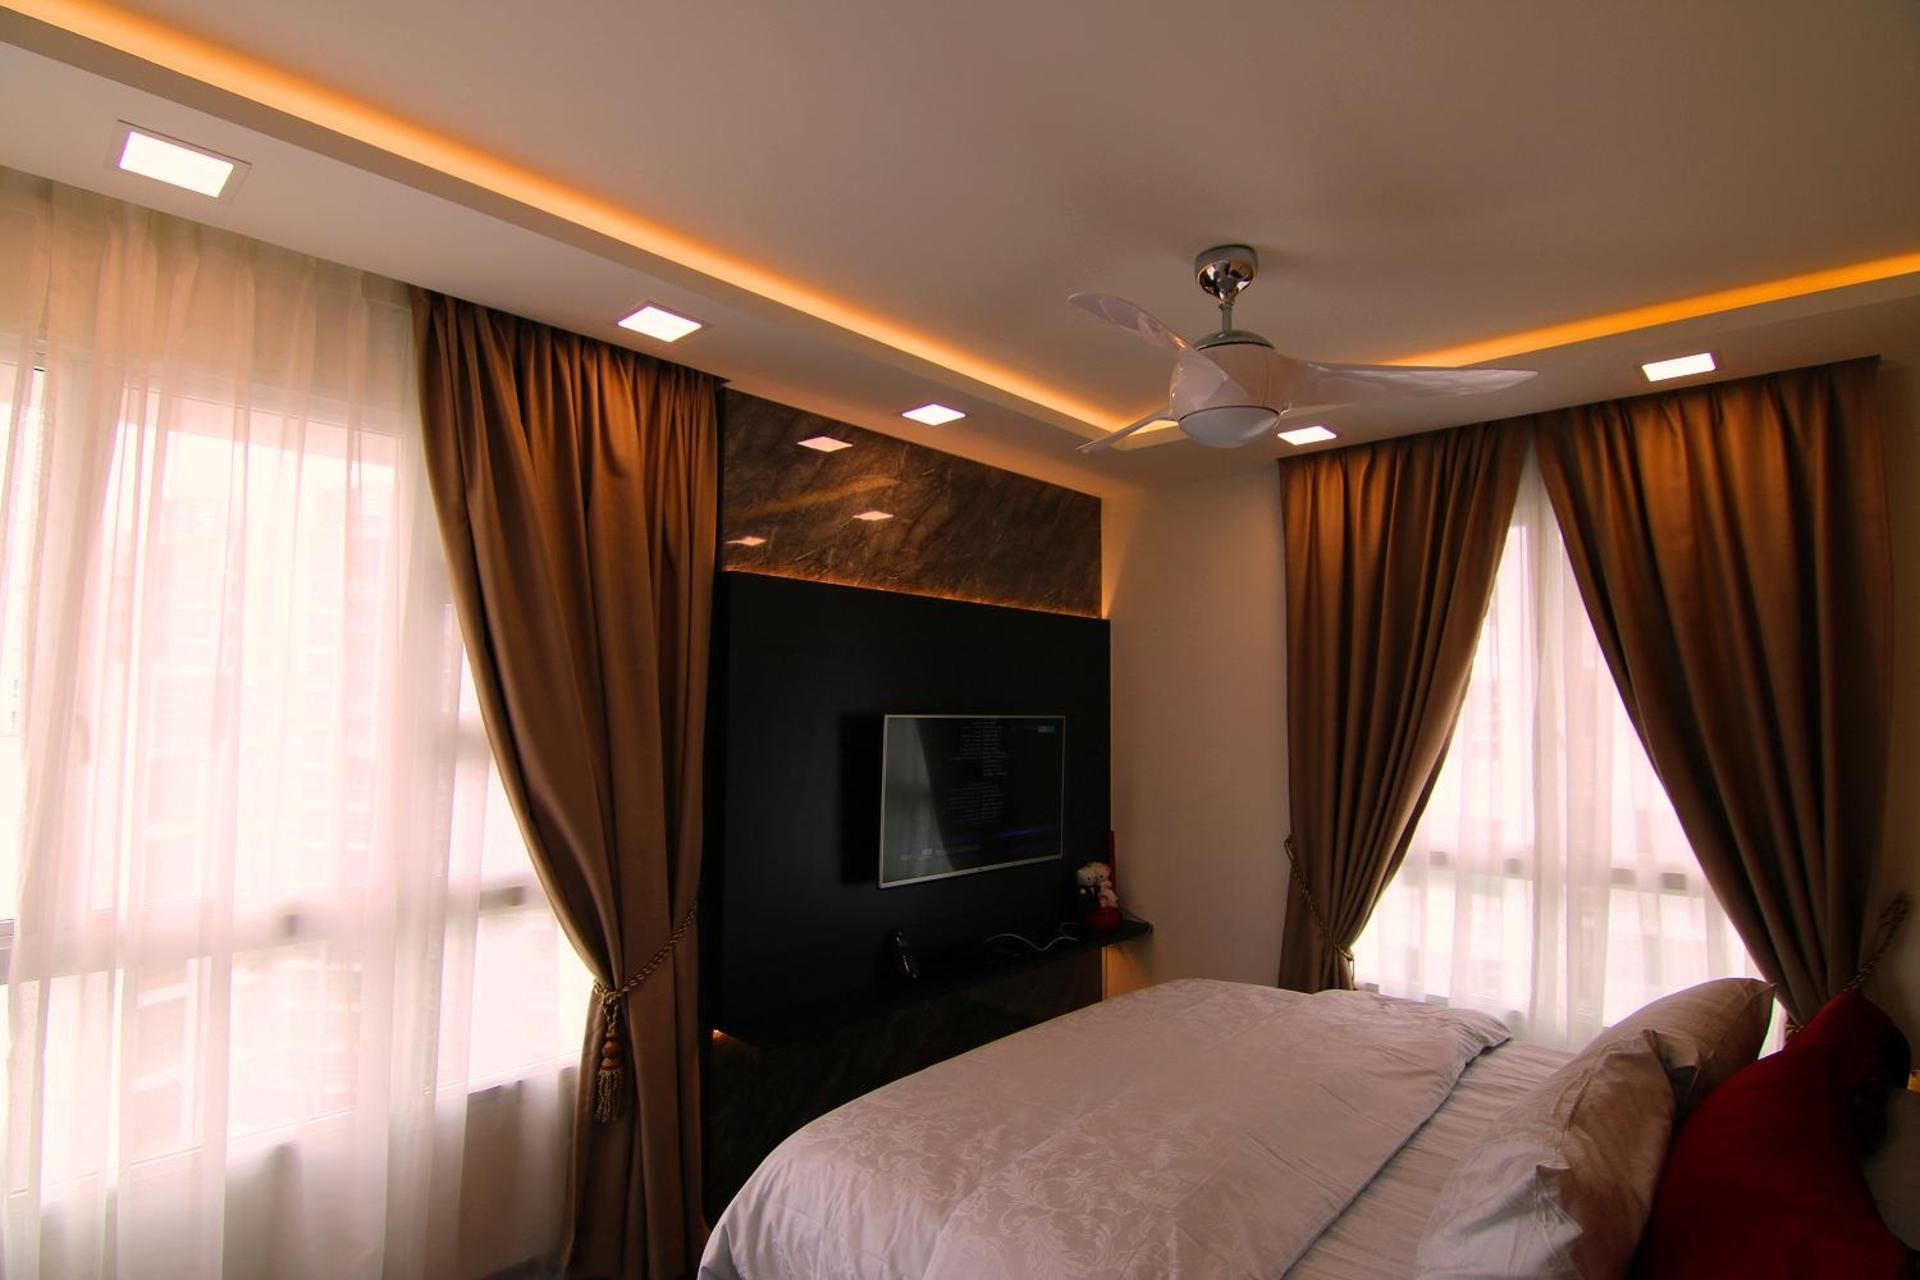 4 room hdb master bedroom design  Edgefield Plains Block B  Qanvast  Home Design Renovation